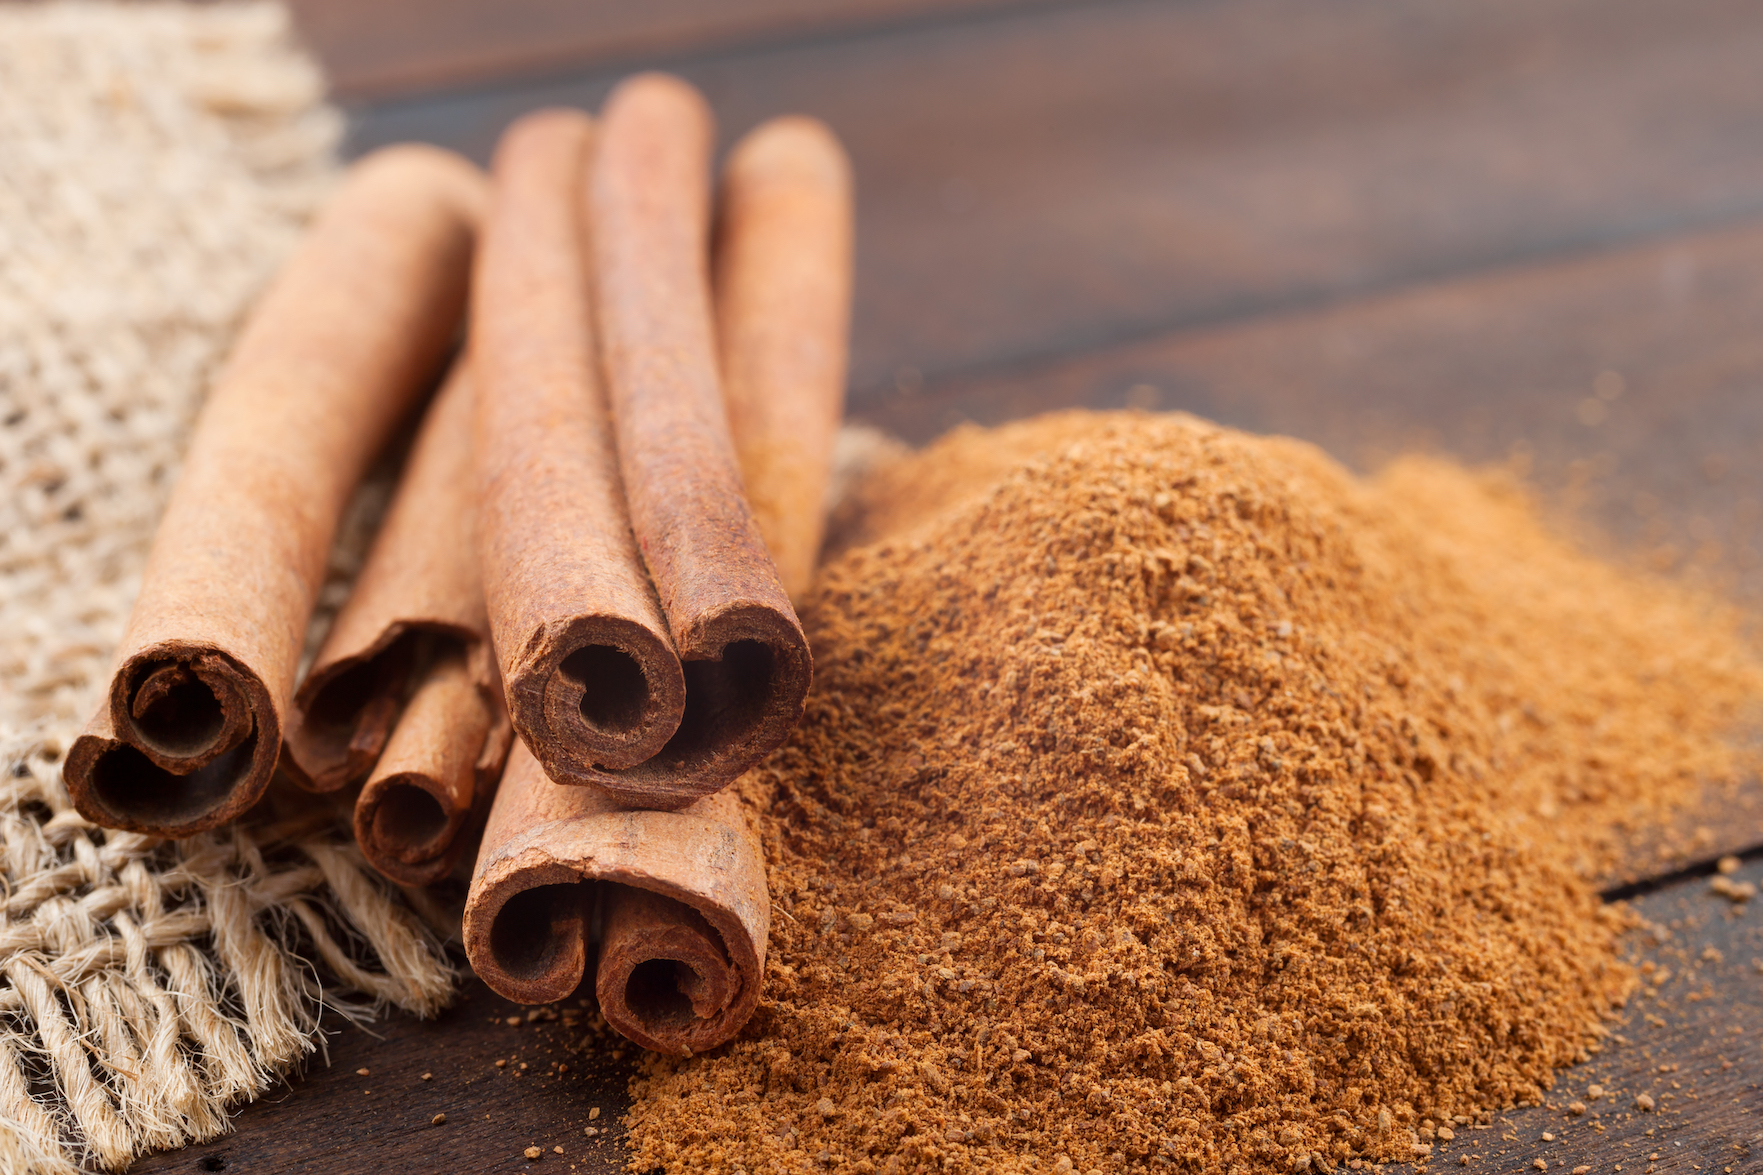 A new study has revealed that a compound found in cinnamon could help you fight obesity and hyperglycemia.